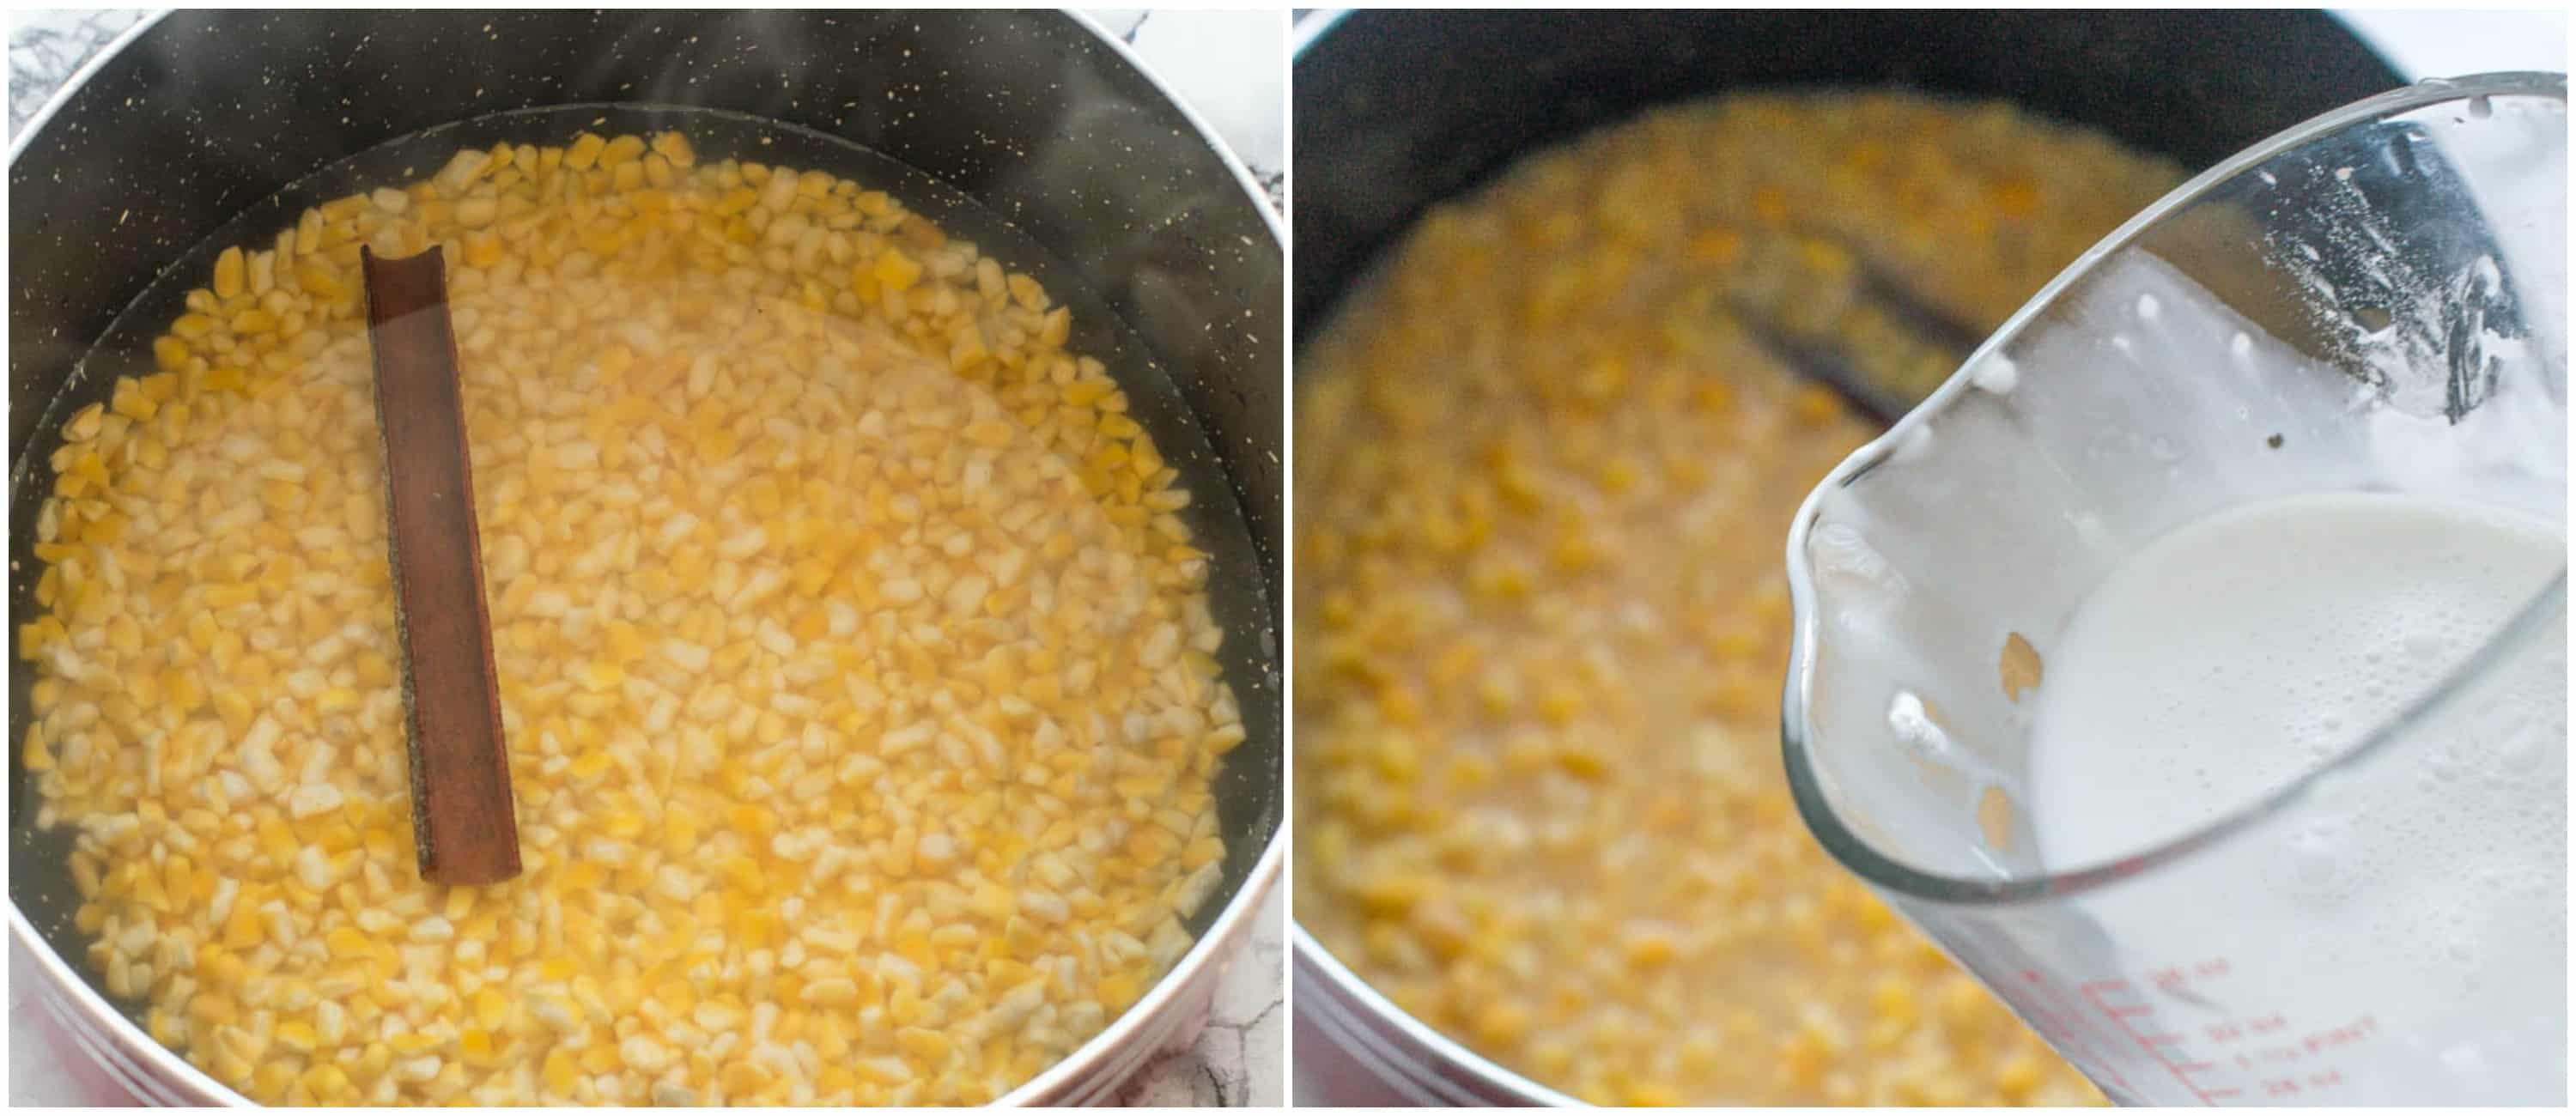 hominy corn porridge steps 3-4